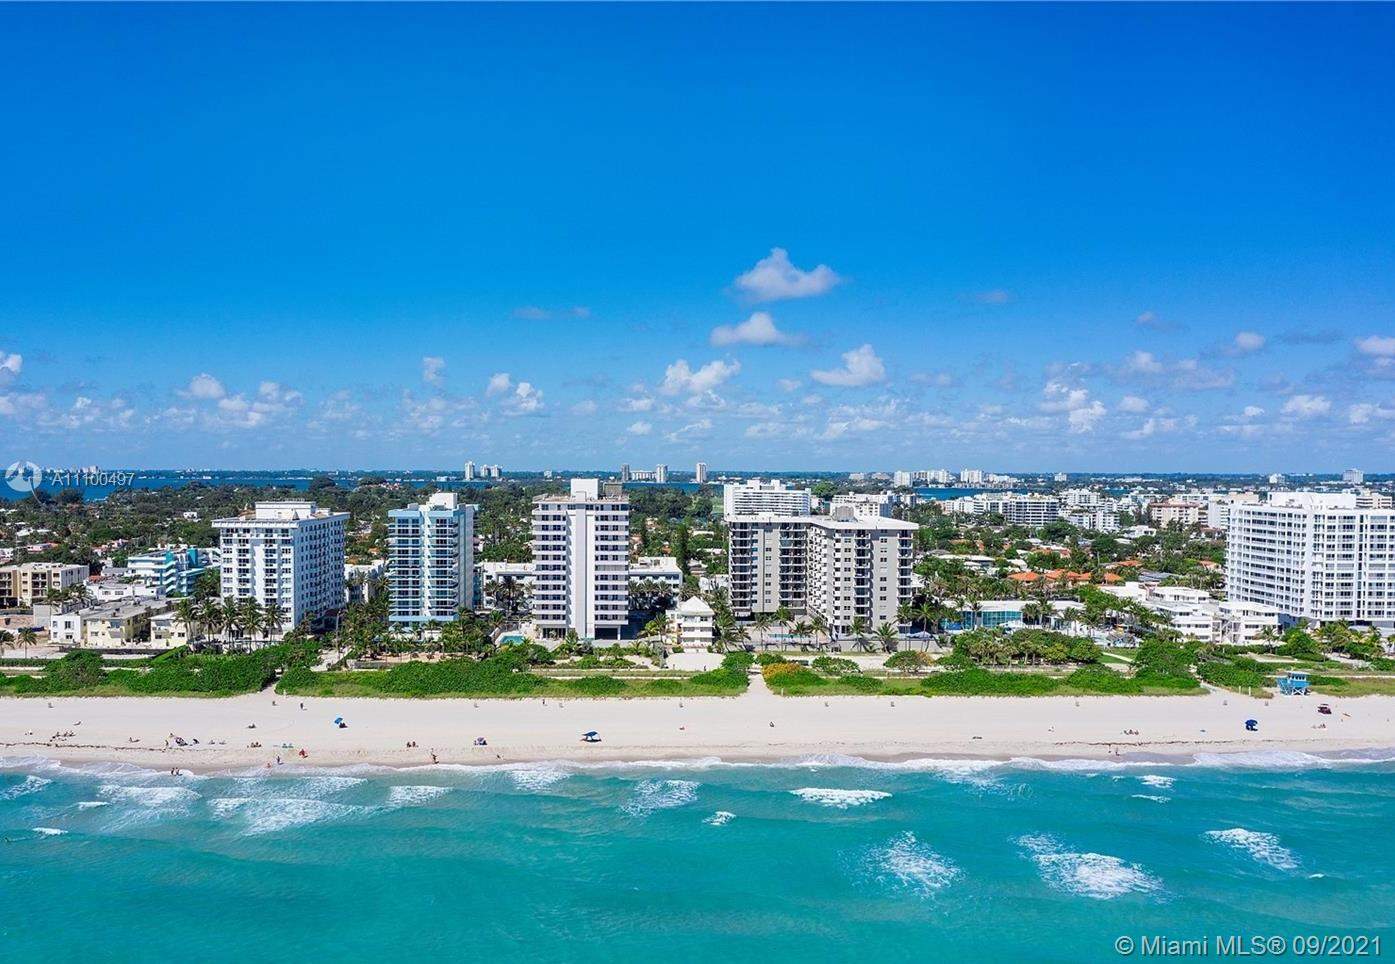 Available now, 2 bedrooms/2 bathrooms in the quiet Surfside Building- Four Winds Condominium with large balcony facing Collins Ave and with partial views of the ocean. This unit has been beautifully decorated and includes all new furniture, living, dining and bedrooms. All well-equipped, just bring your toothbrush!  Live on the Beach in this family friendly building that is just blocks away from Restaurants, Shopping, Supermarkets, Pharmacies, and more.  Hurricane Impact windows throughout. One assigned parking space with plenty of street parking nearby. 24/7 Security & Front Desk Concierge in this building. This rental price Includes water, sewer and internet service. Association requires renters to apply directly.